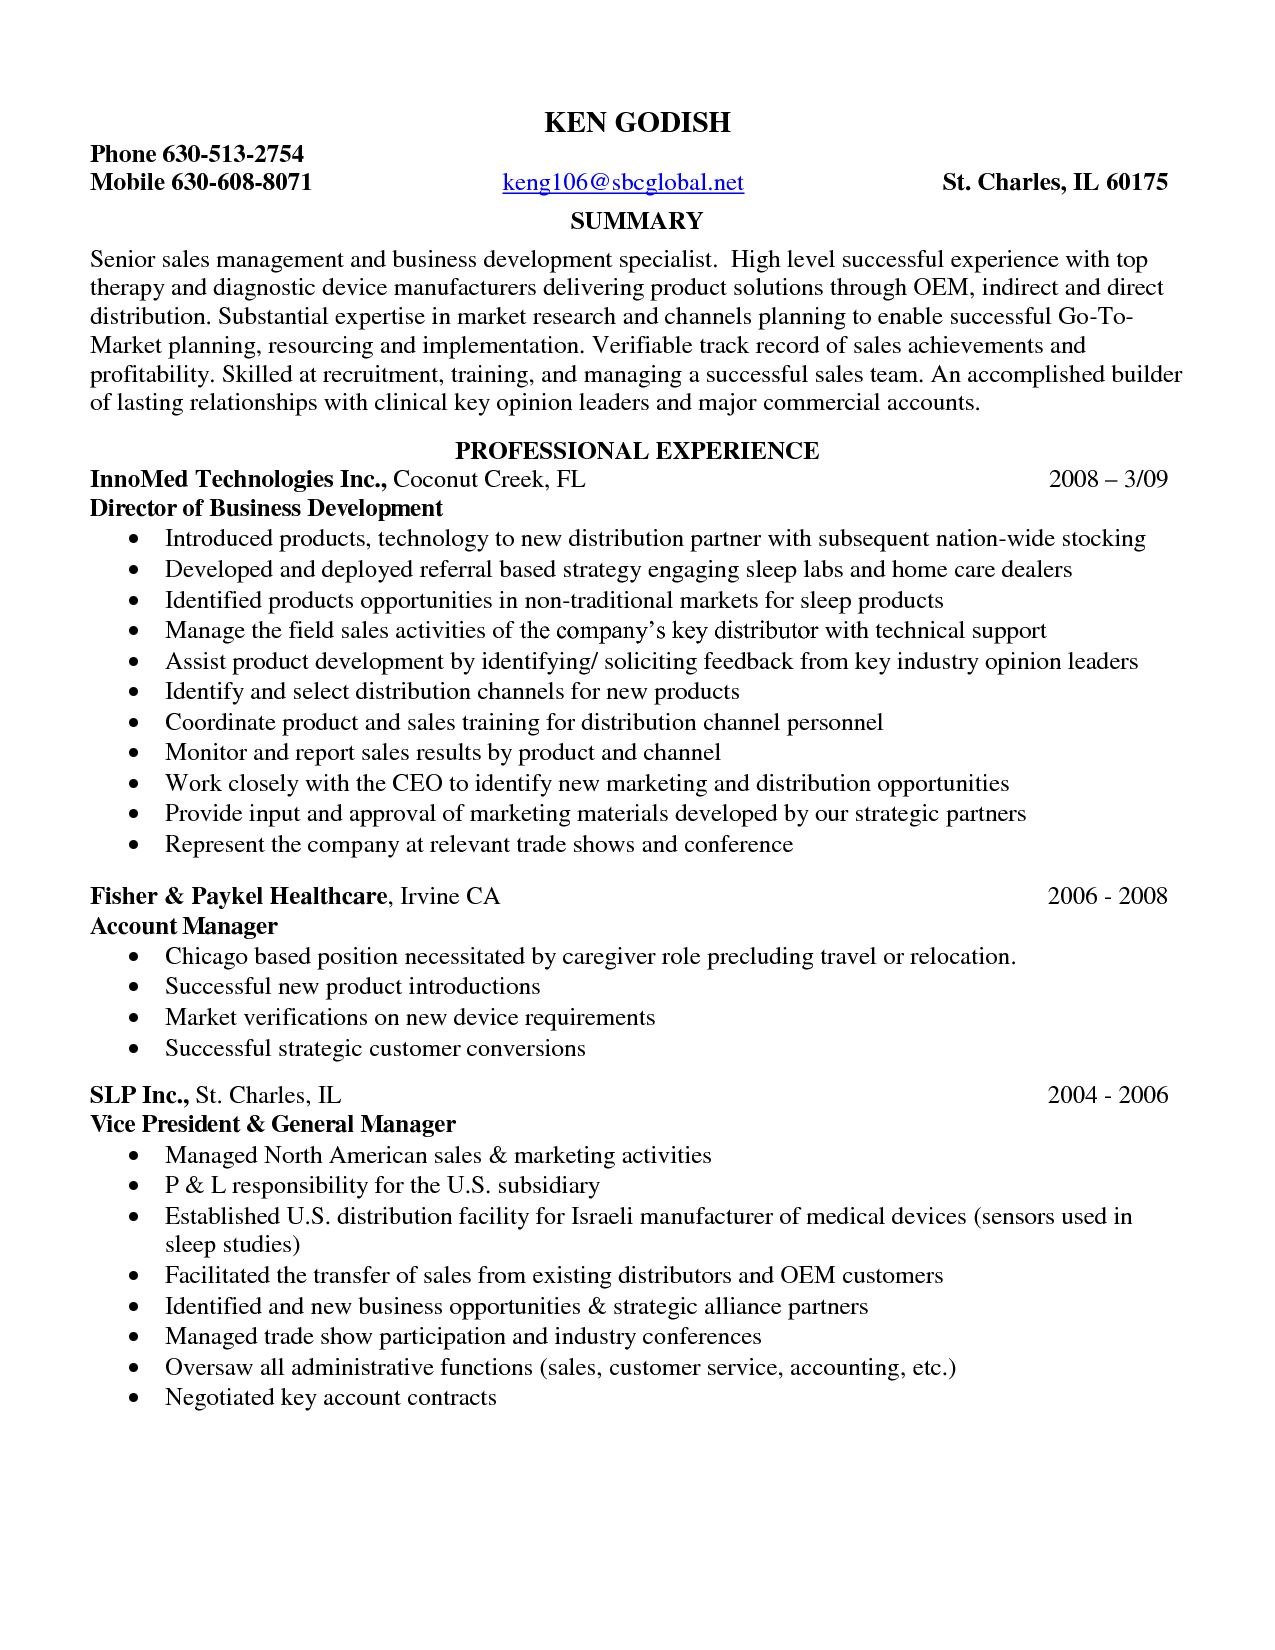 sample resume entry level pharmaceutical sales sample resume entry level pharmaceutical sales entry level pharmaceutical - Medical Device Quality Engineer Sample Resume